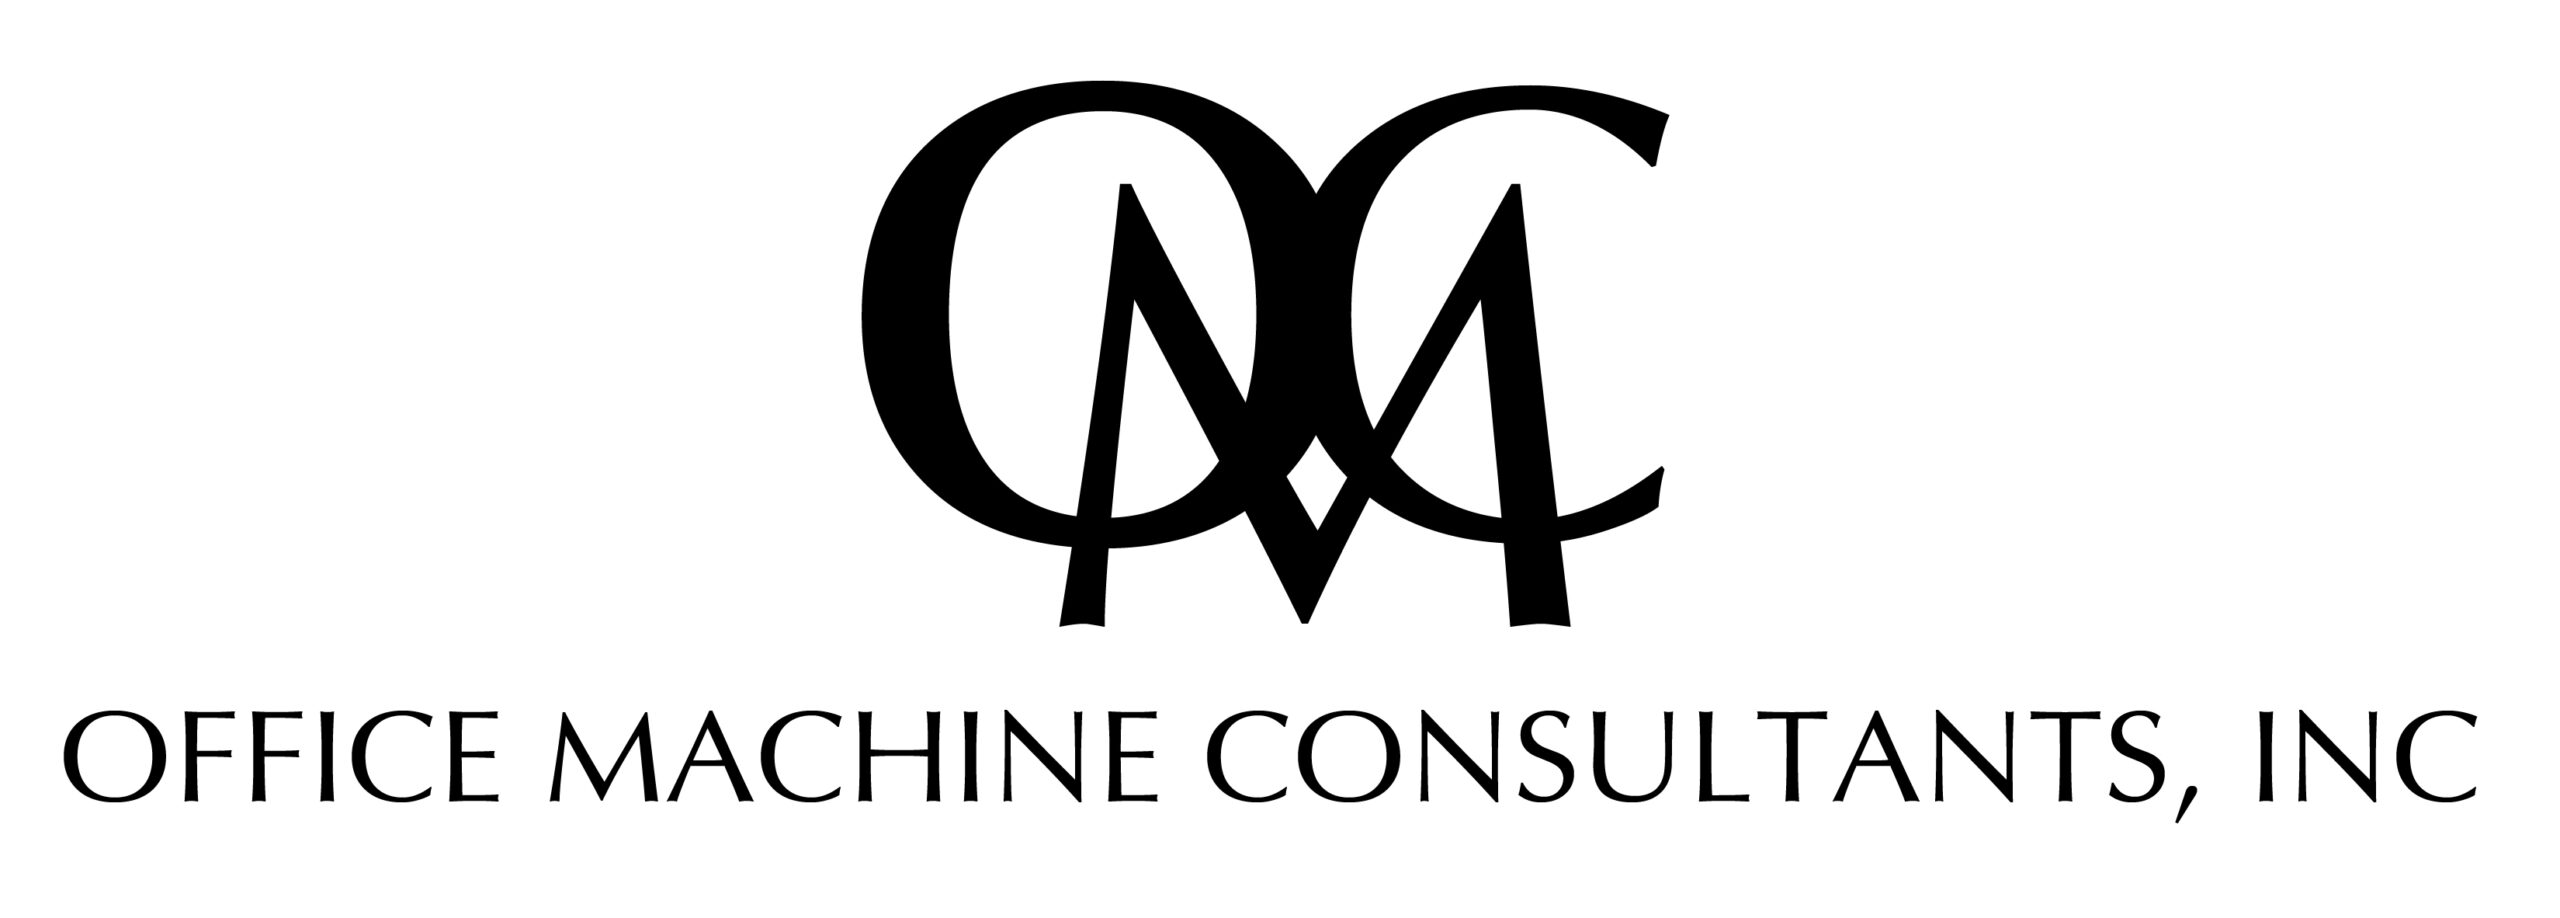 Office Machine Consultants, Inc.